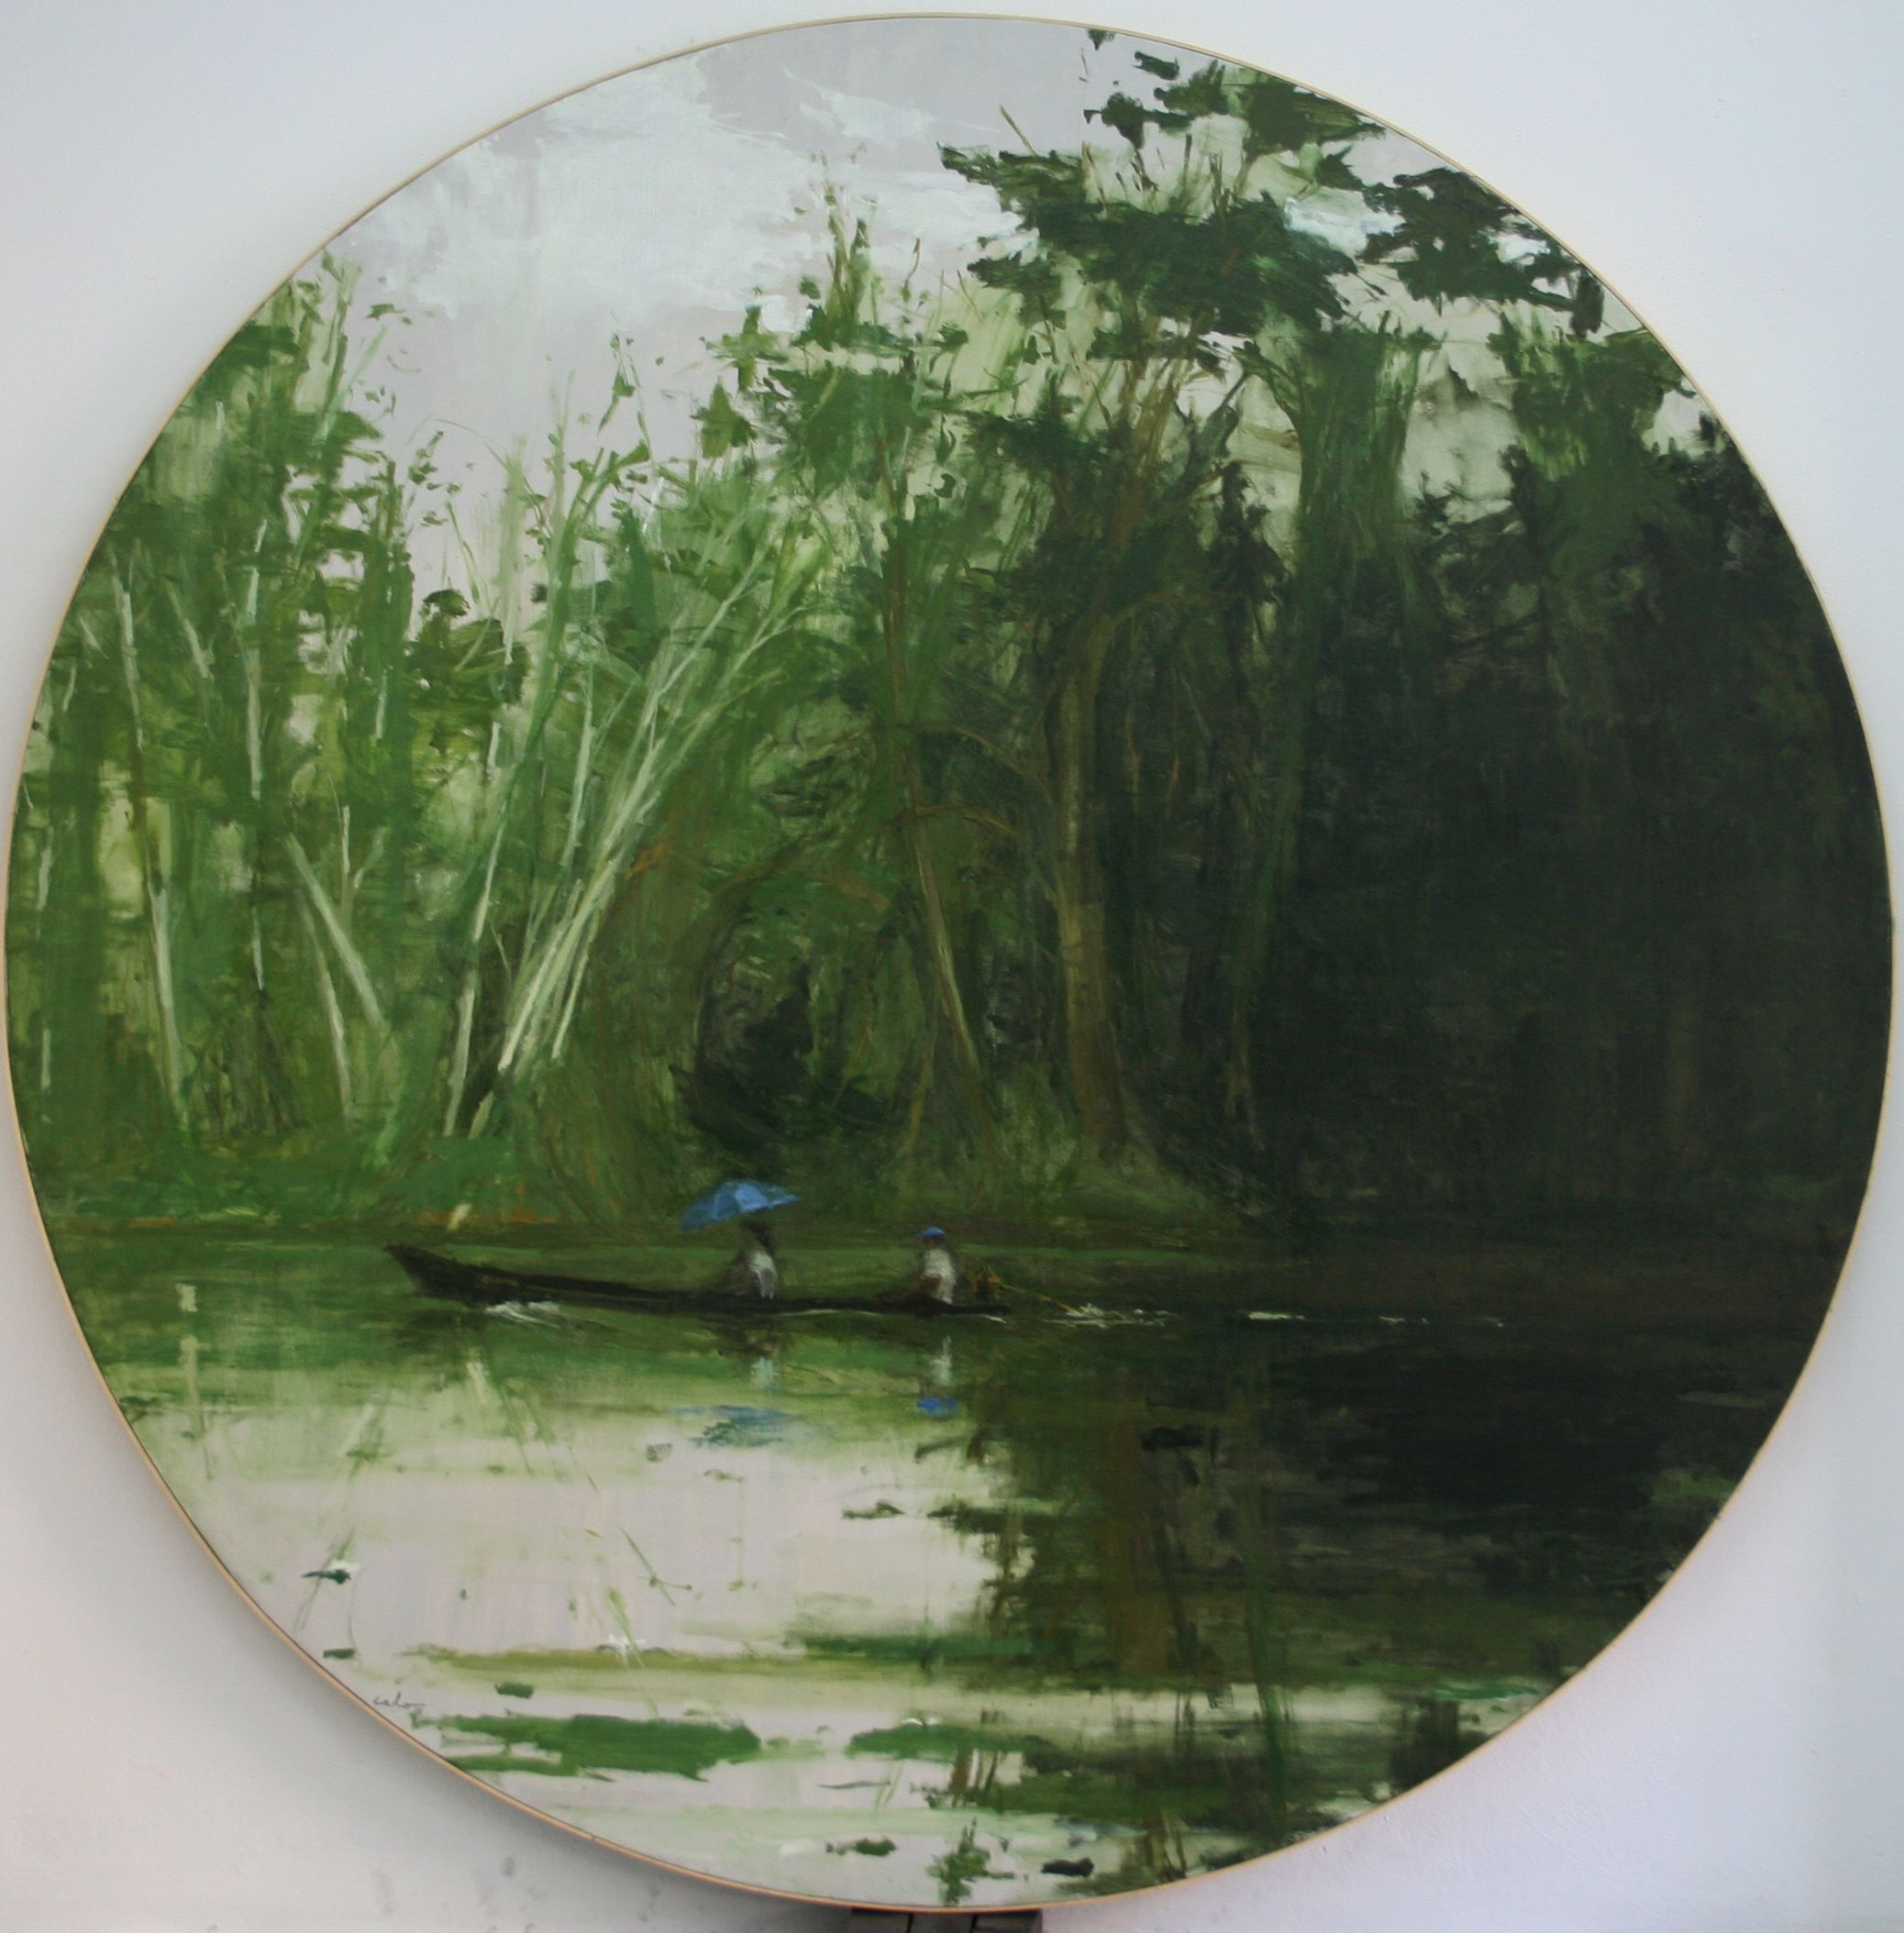 Sailing from Leticia to Santa Rosa, Jungle series,Calo  Carratalá,Contemporary painting